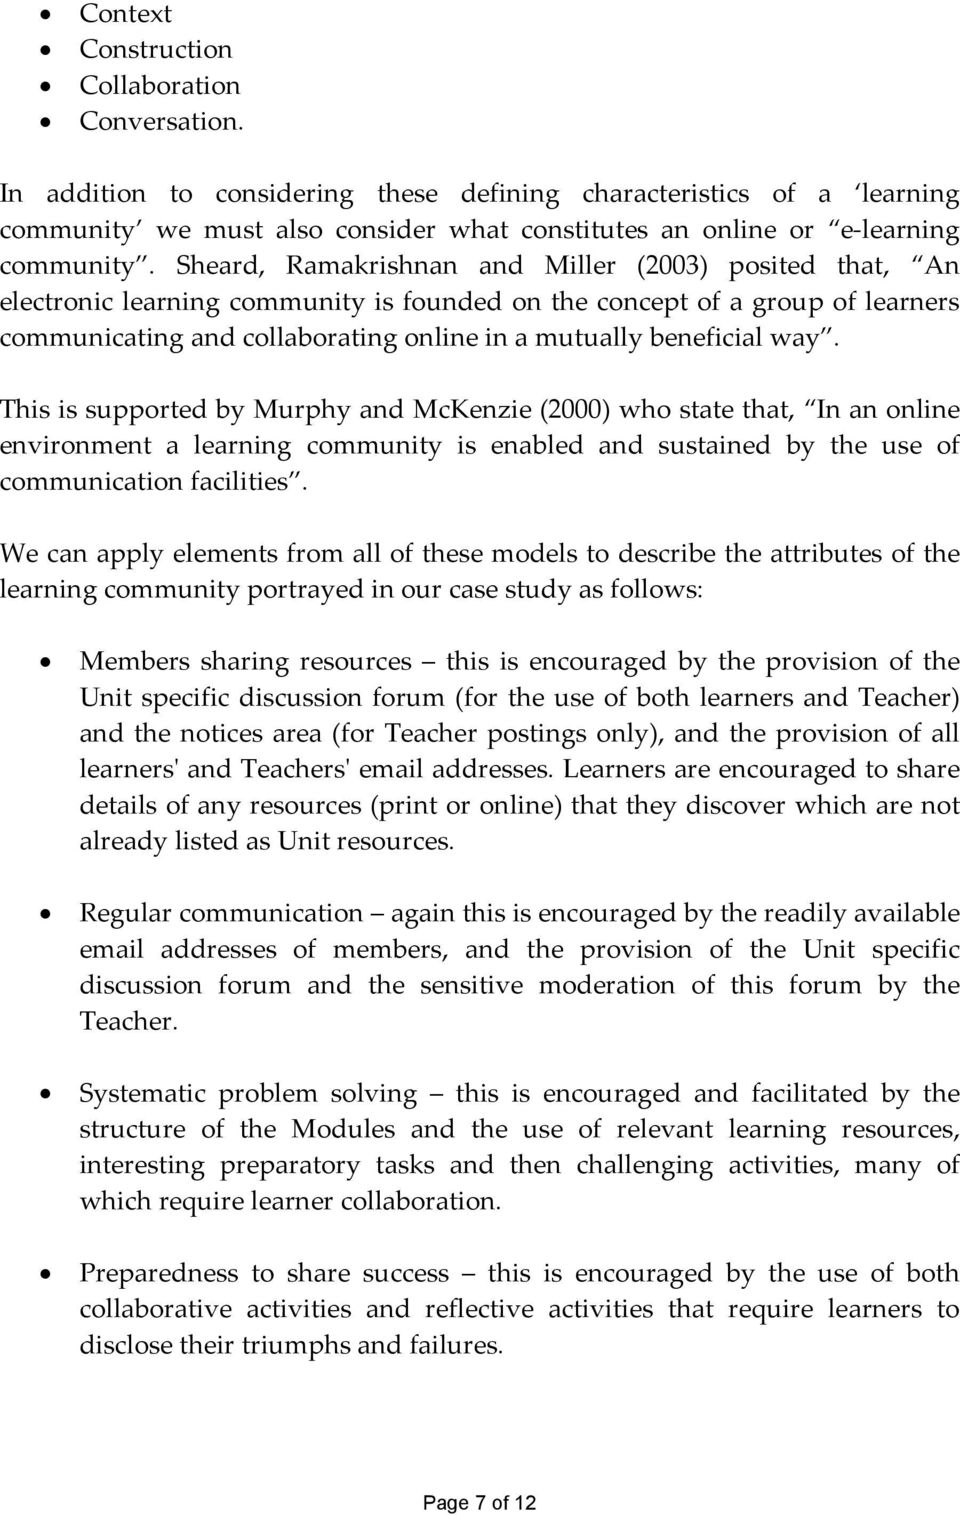 Sheard, Ramakrishnan and Miller (2003) posited that, An electronic learning community is founded on the concept of a group of learners communicating and collaborating online in a mutually beneficial